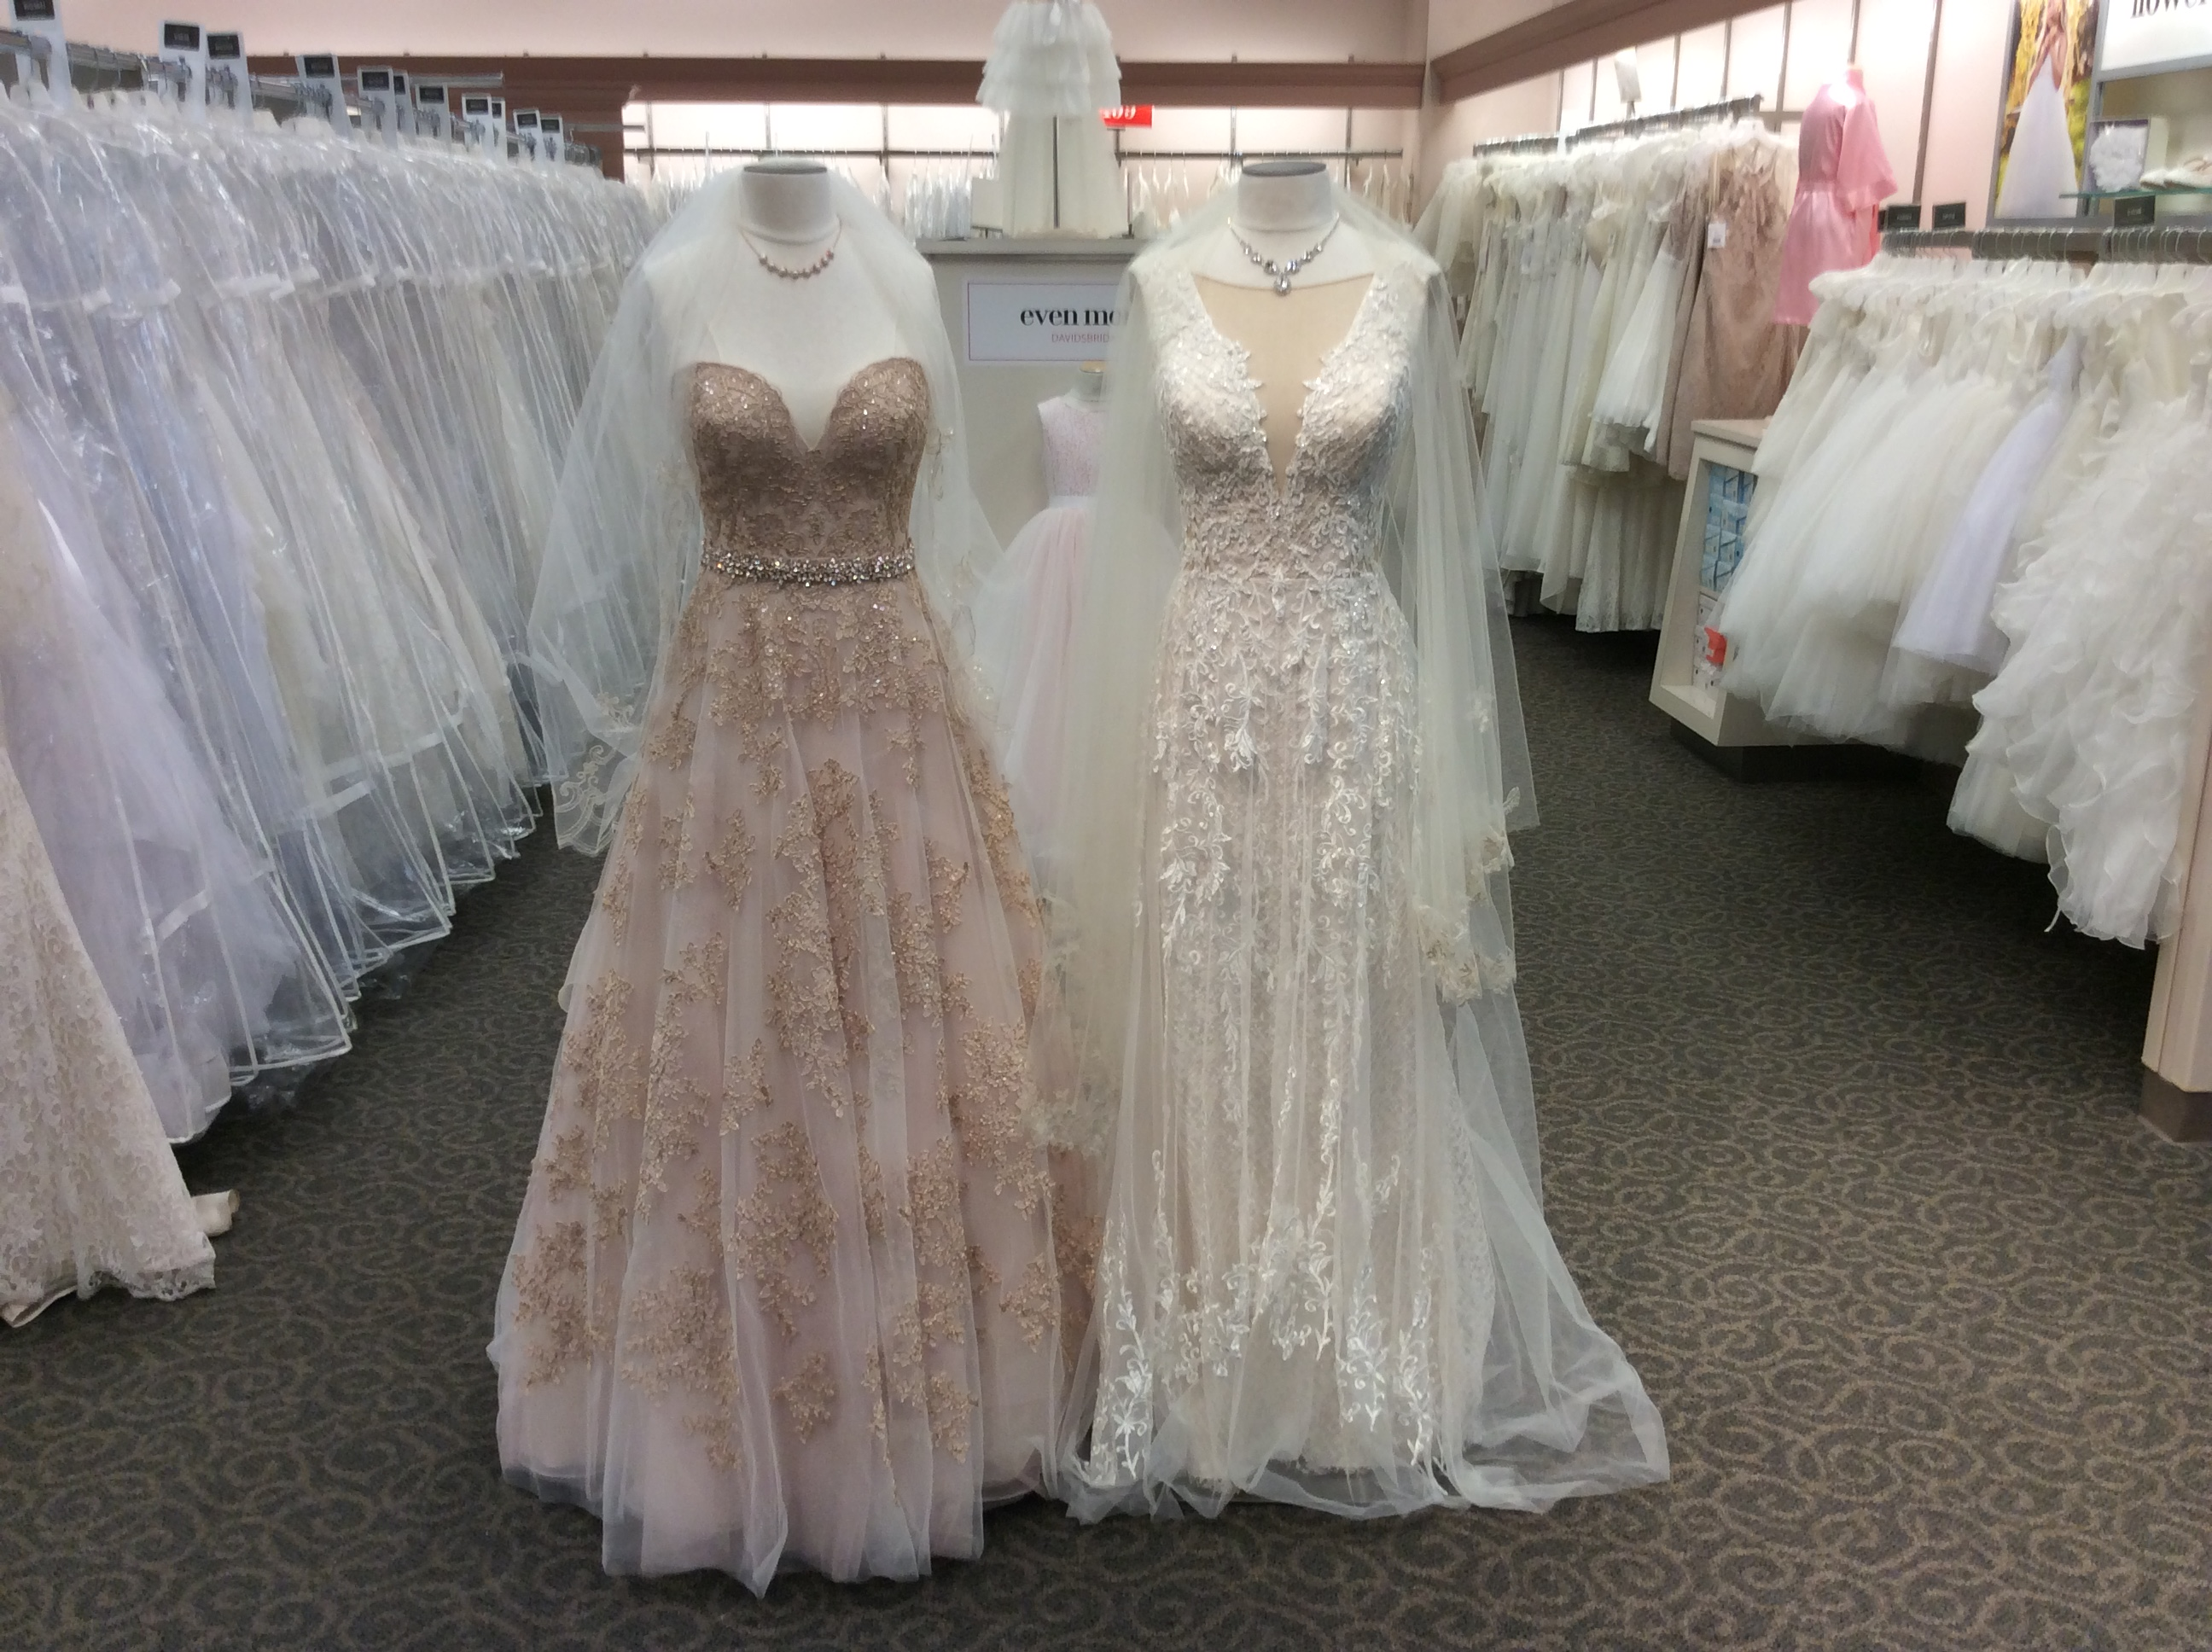 Davids Bridal 2225 Plaza Parkway Suite J 3 Central Valley Modesto CA